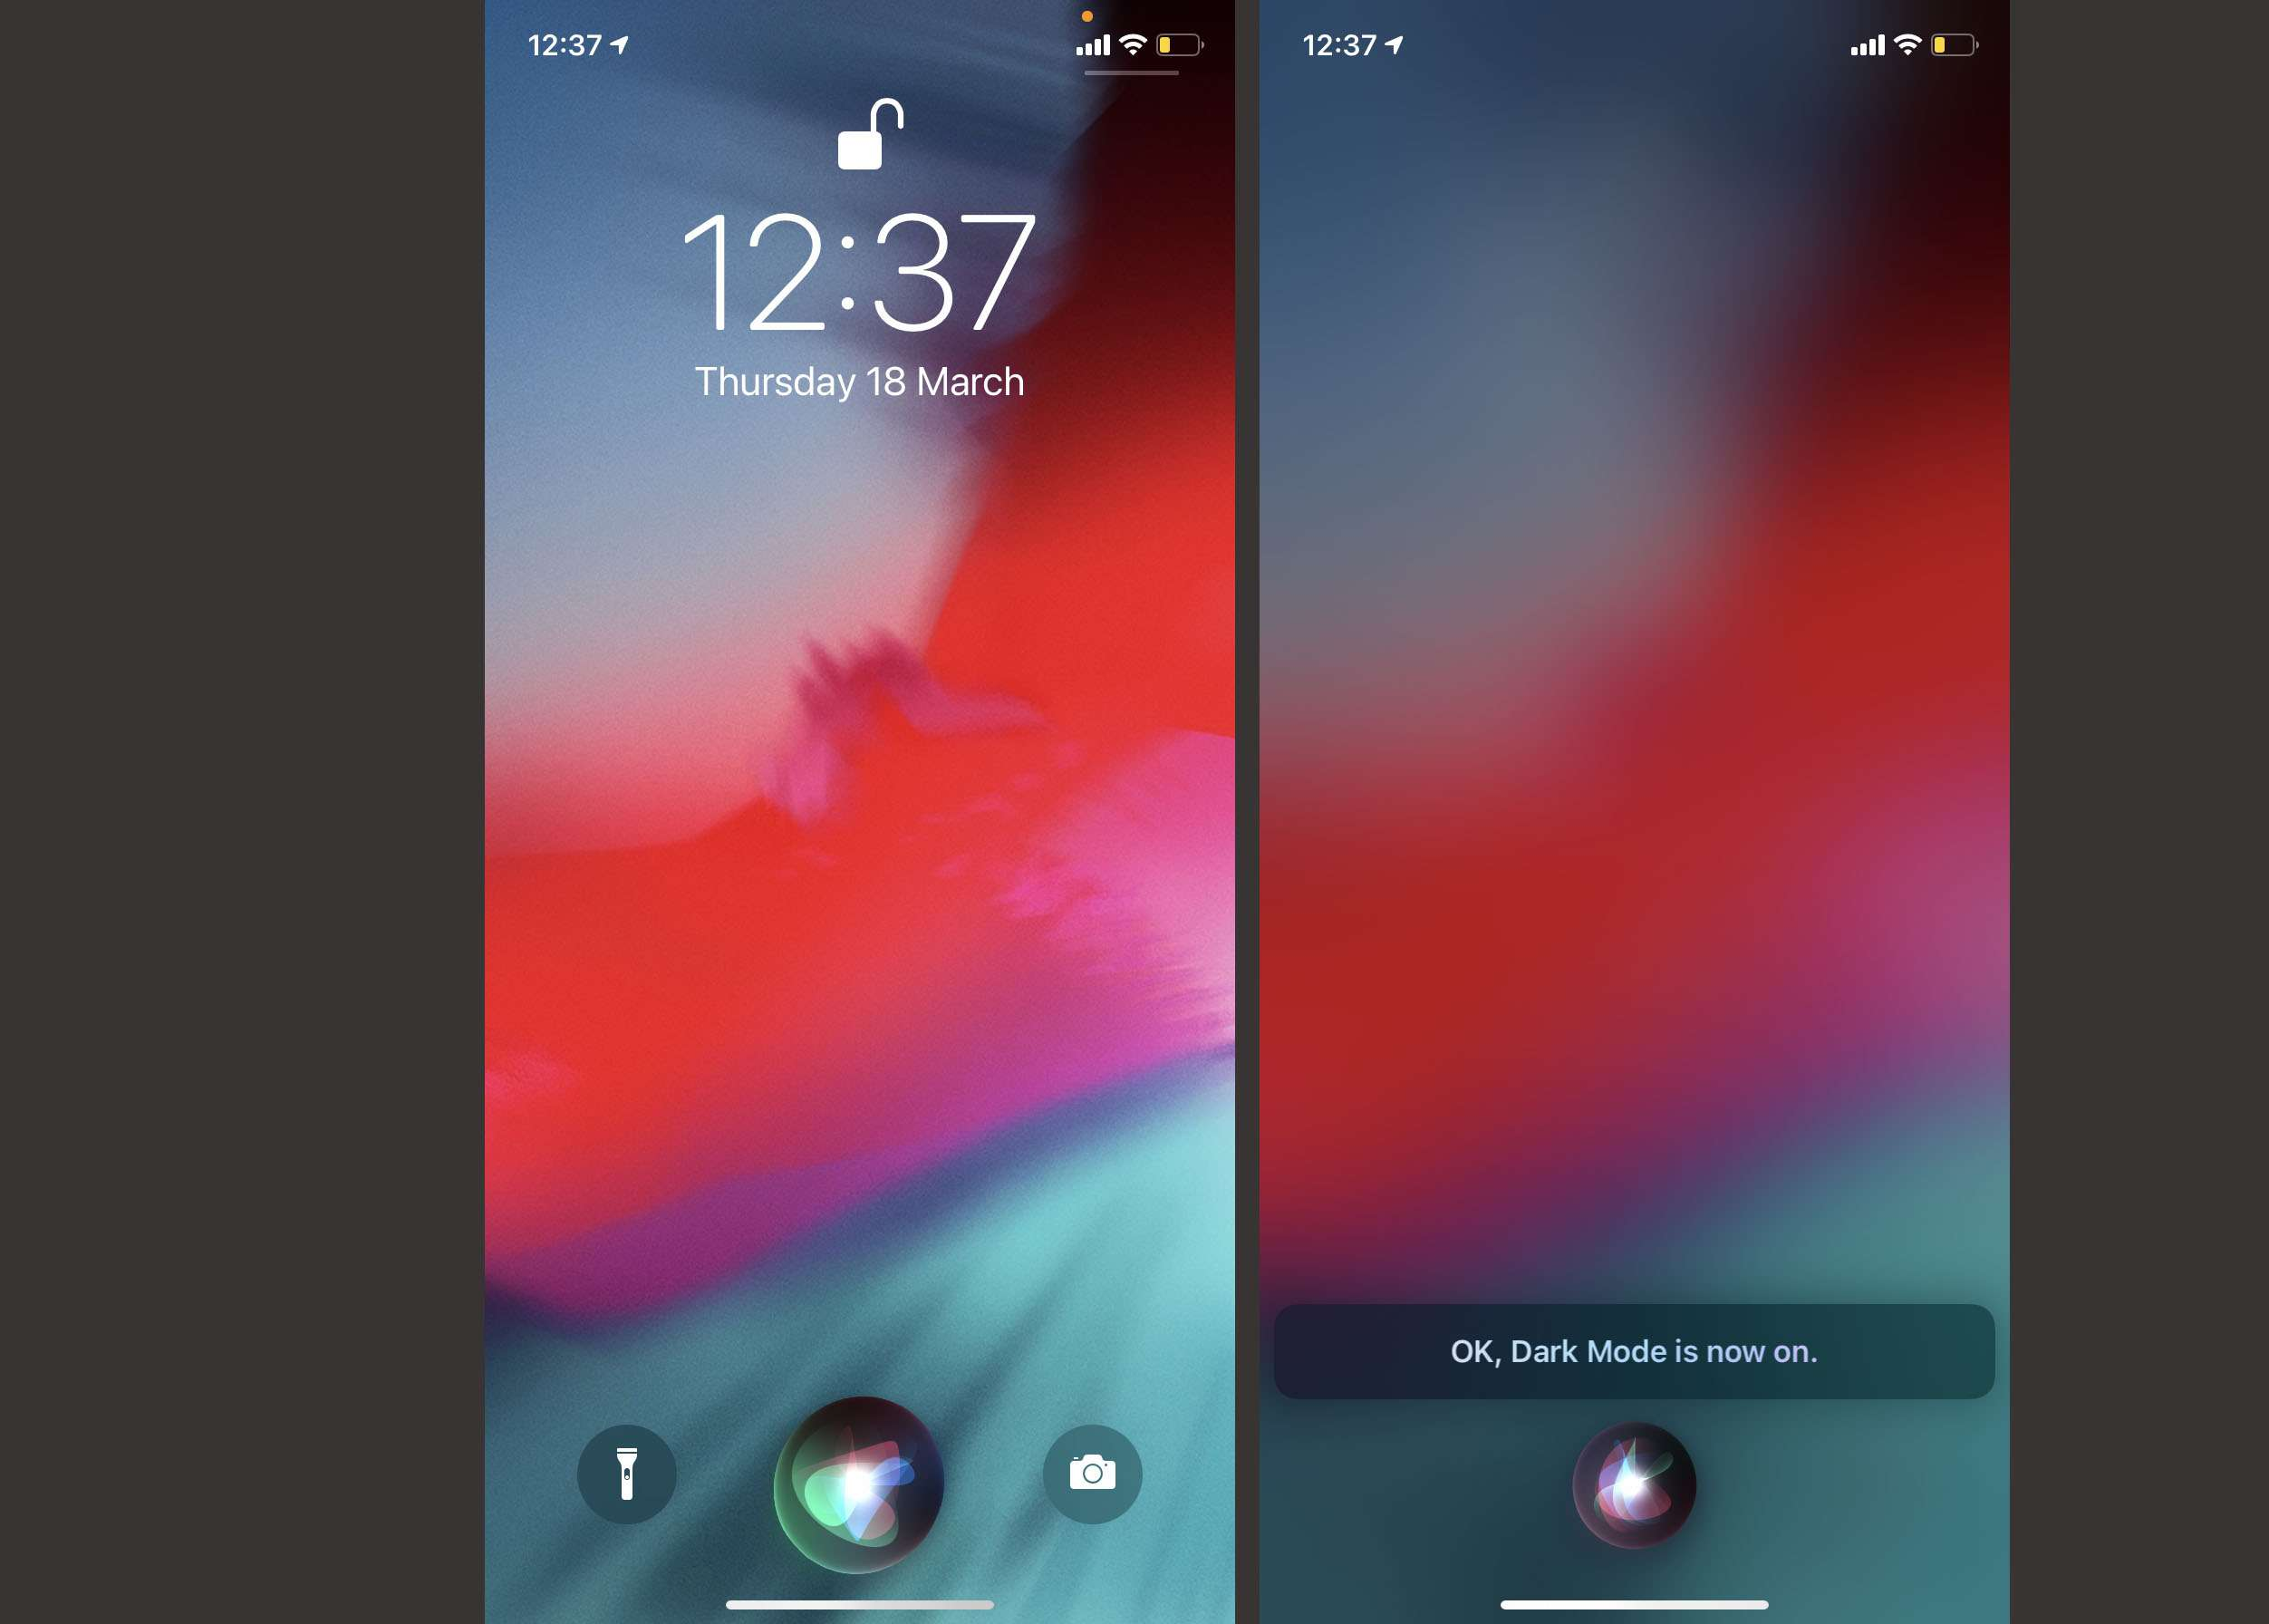 Steps needed to talk to Siri to switch Dark Mode on